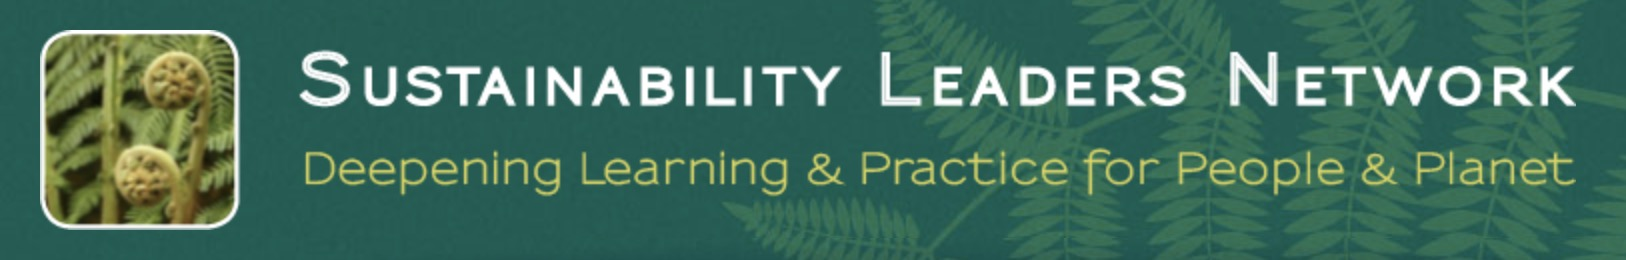 Sustainability Leaders Network Logo